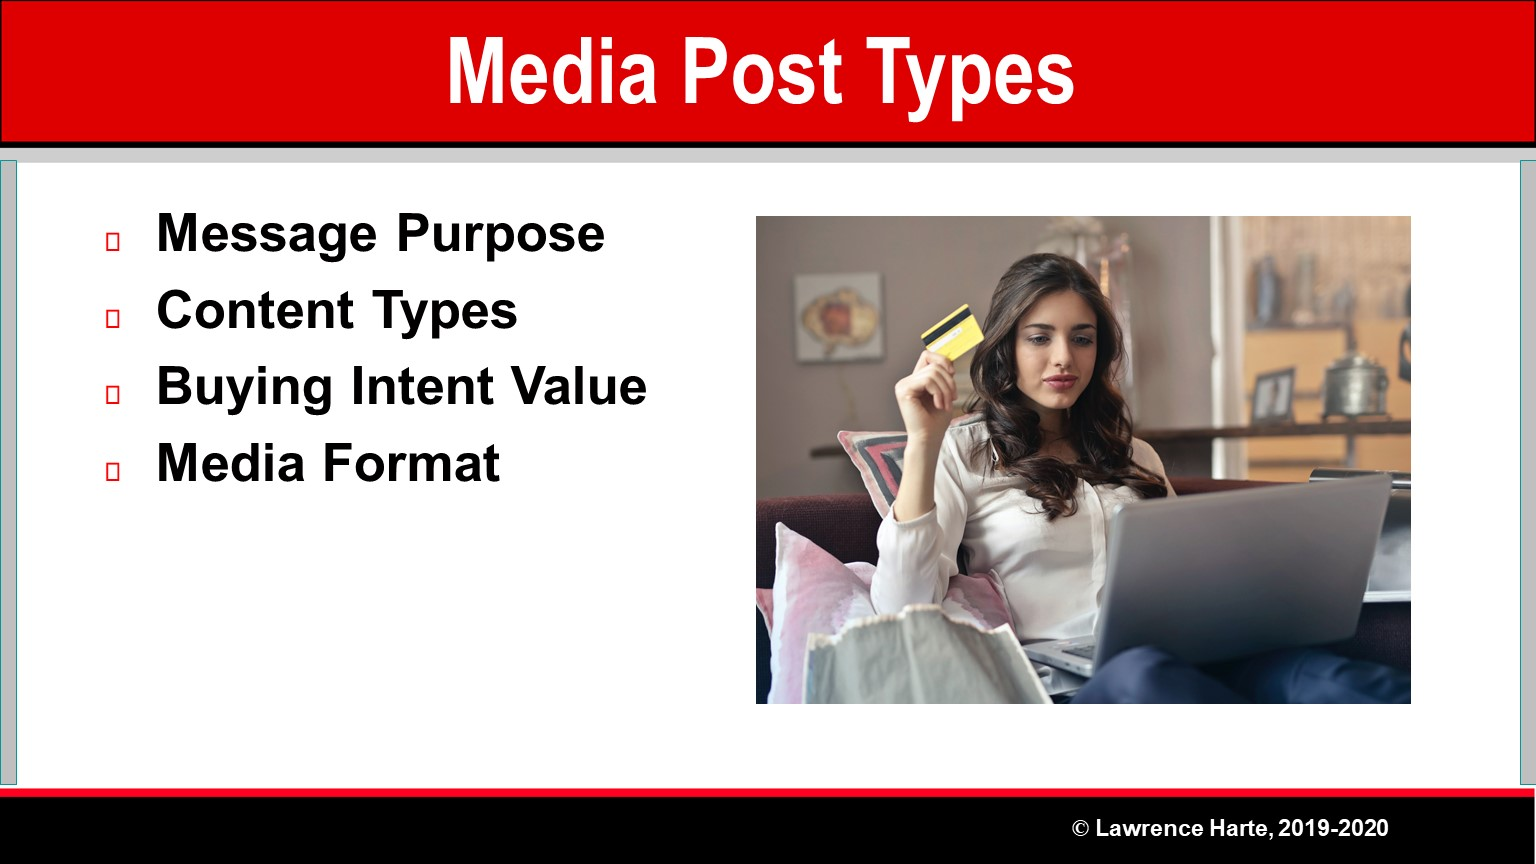 Book Pre-Launch Marketing Media Post Types